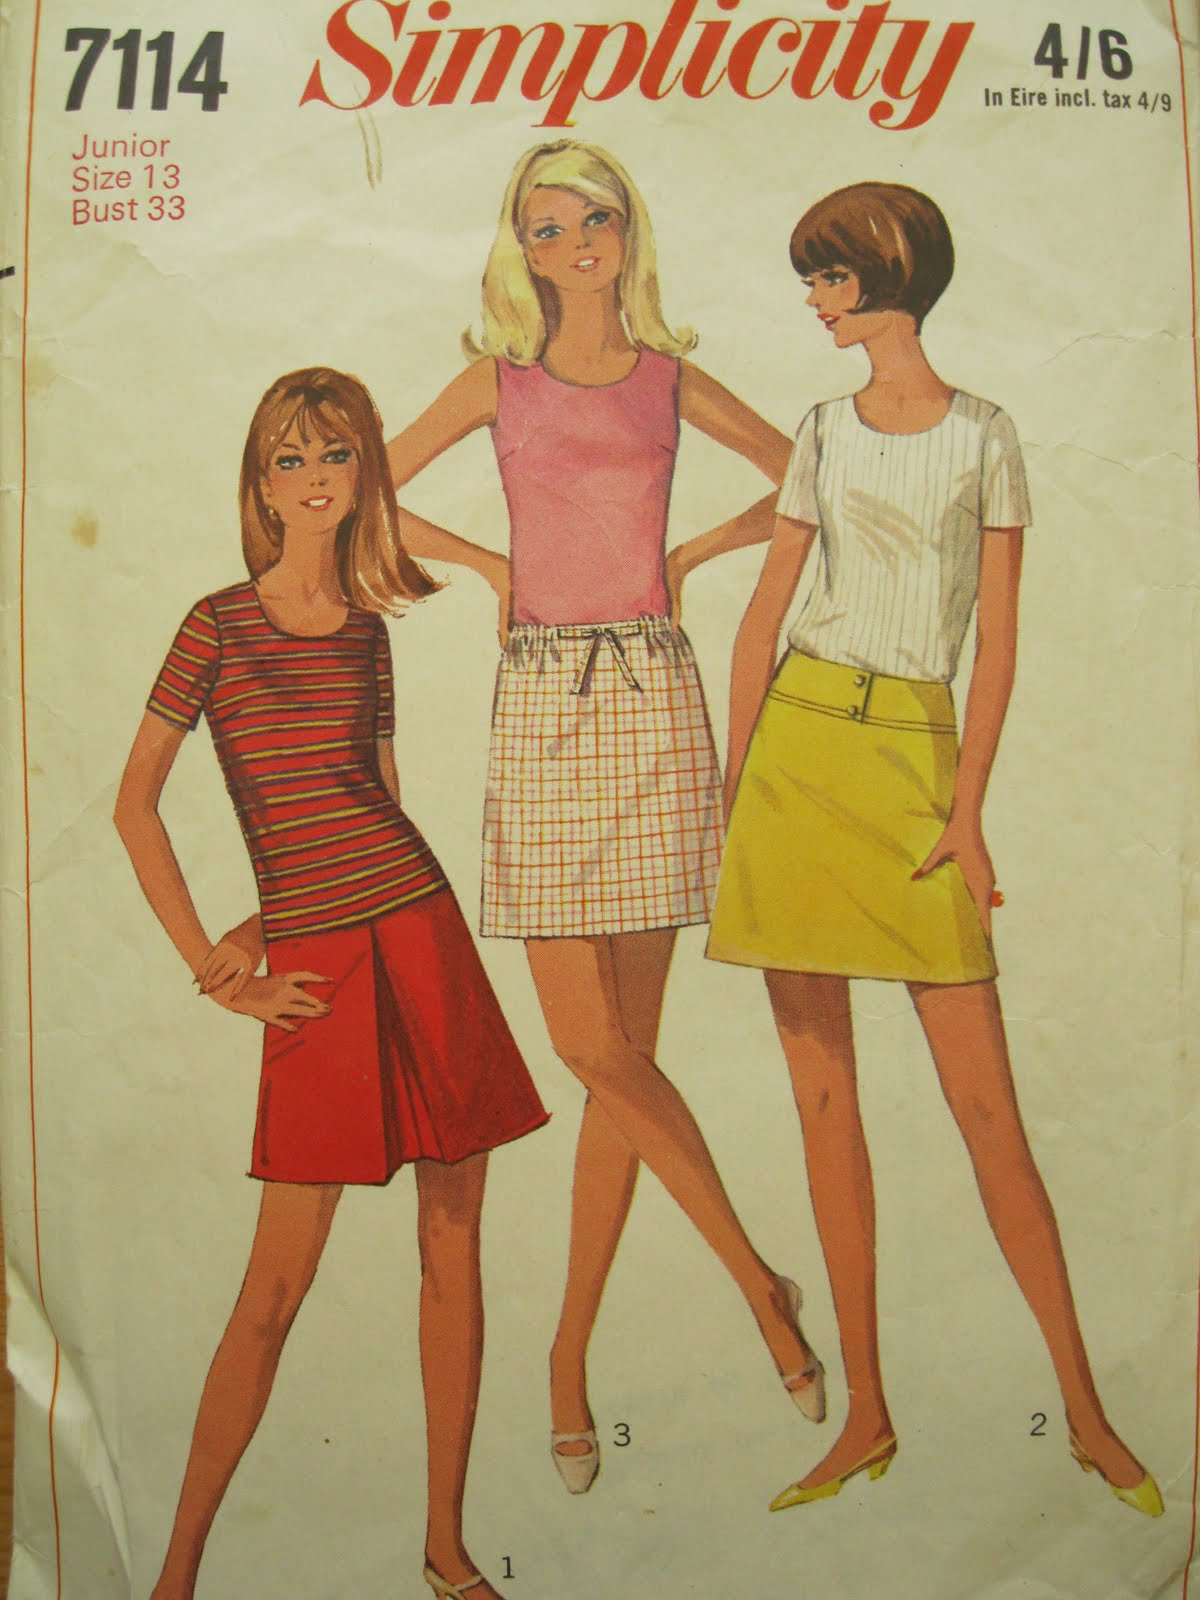 Mini skirt from the 60s – Fashionable skirts 2017 photo blog